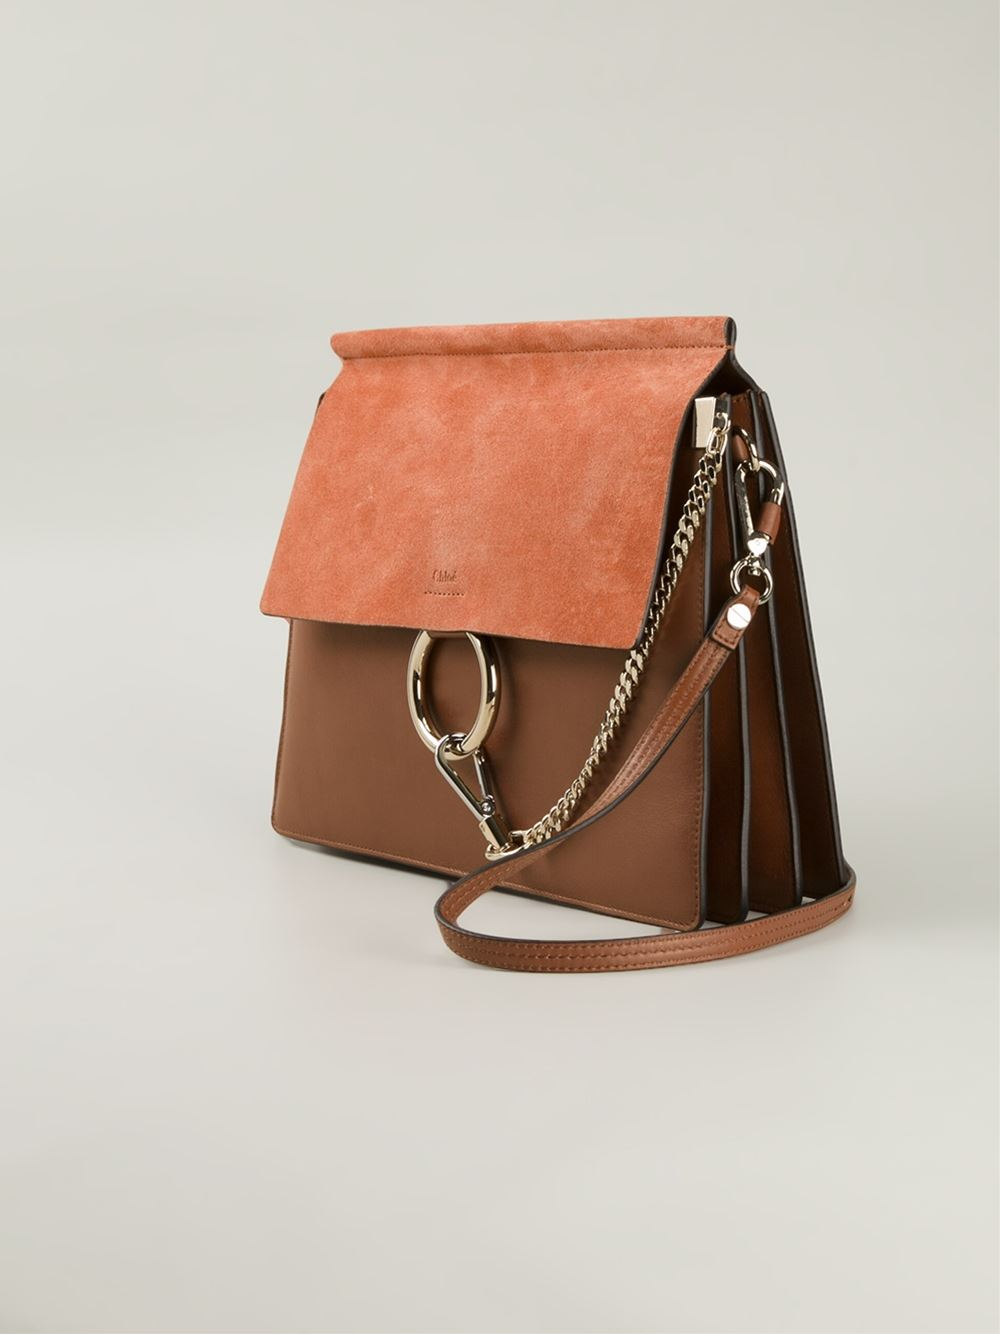 Chlo¨¦ Faye Leather and Suede Shoulder Bag in Brown | Lyst